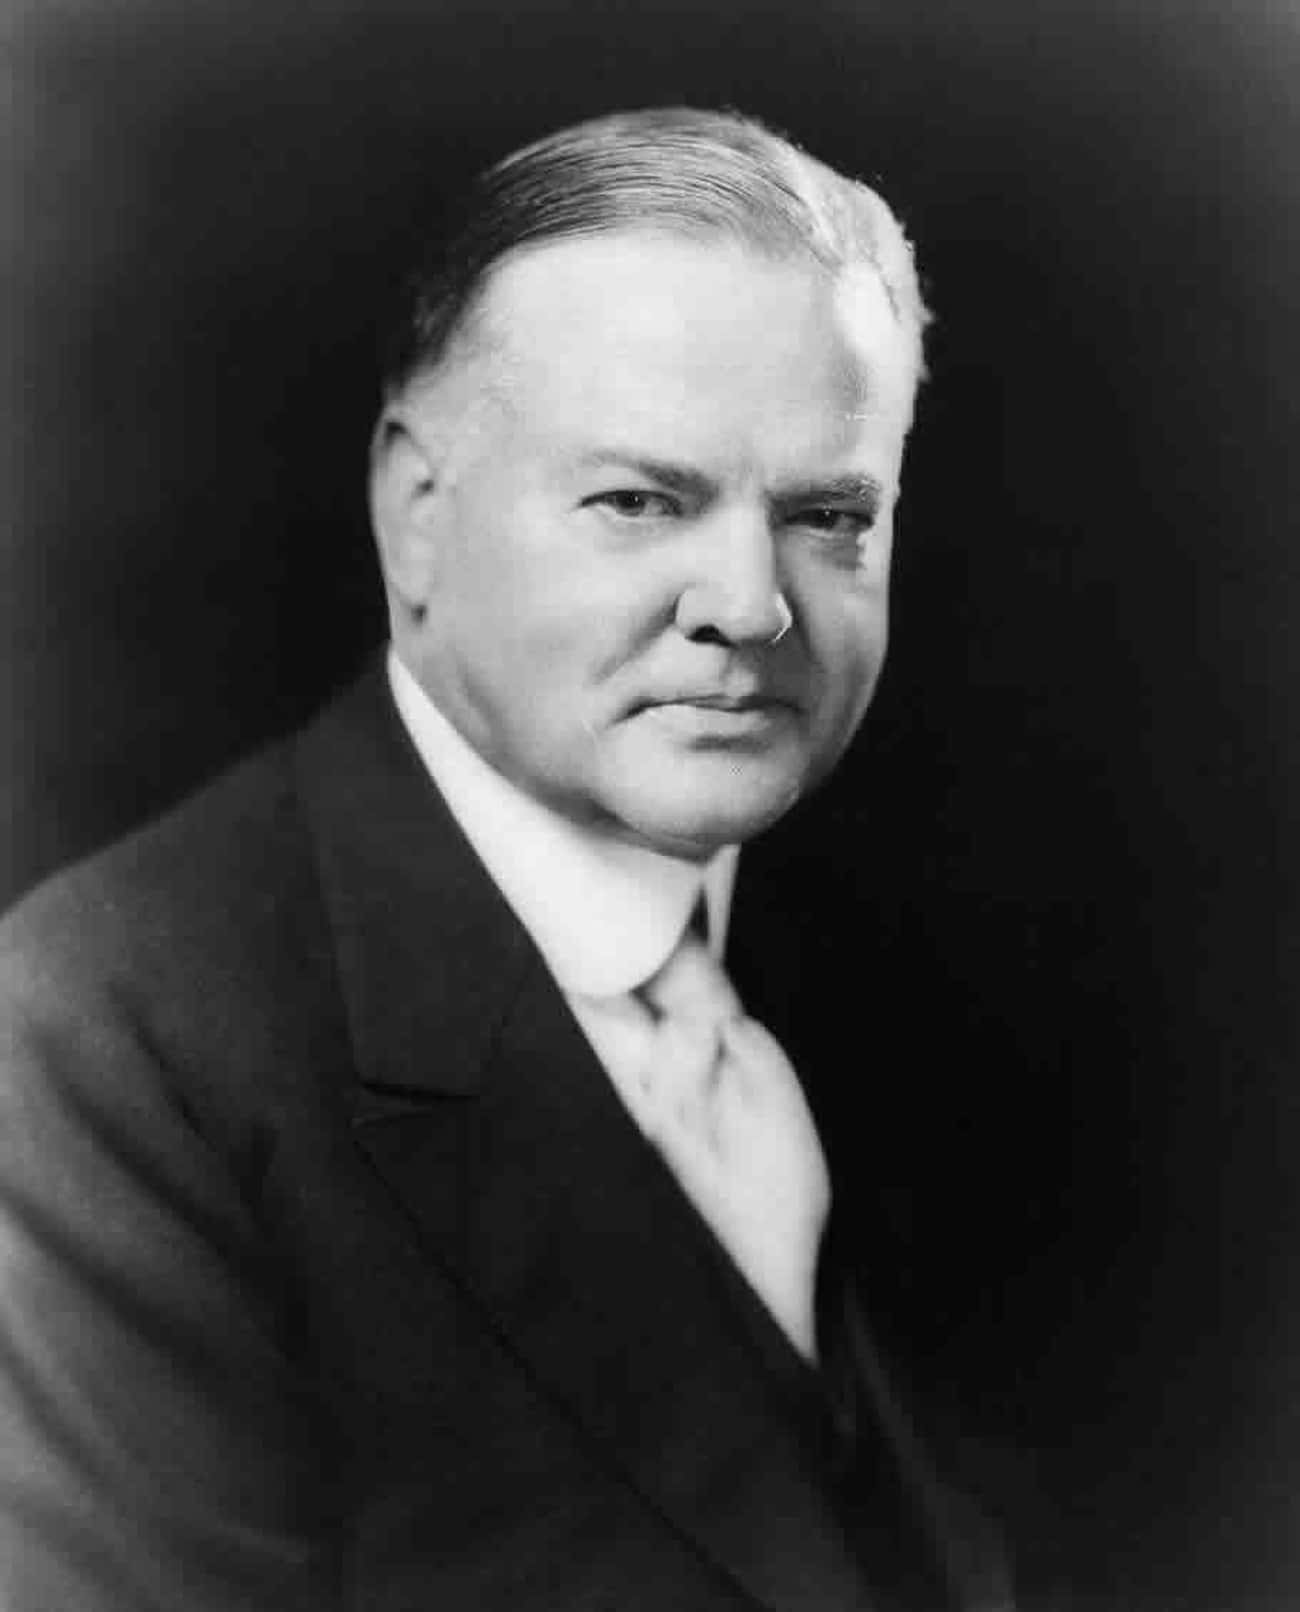 Herbert Hoover is listed (or ranked) 4 on the list The Worst U.S. Presidents